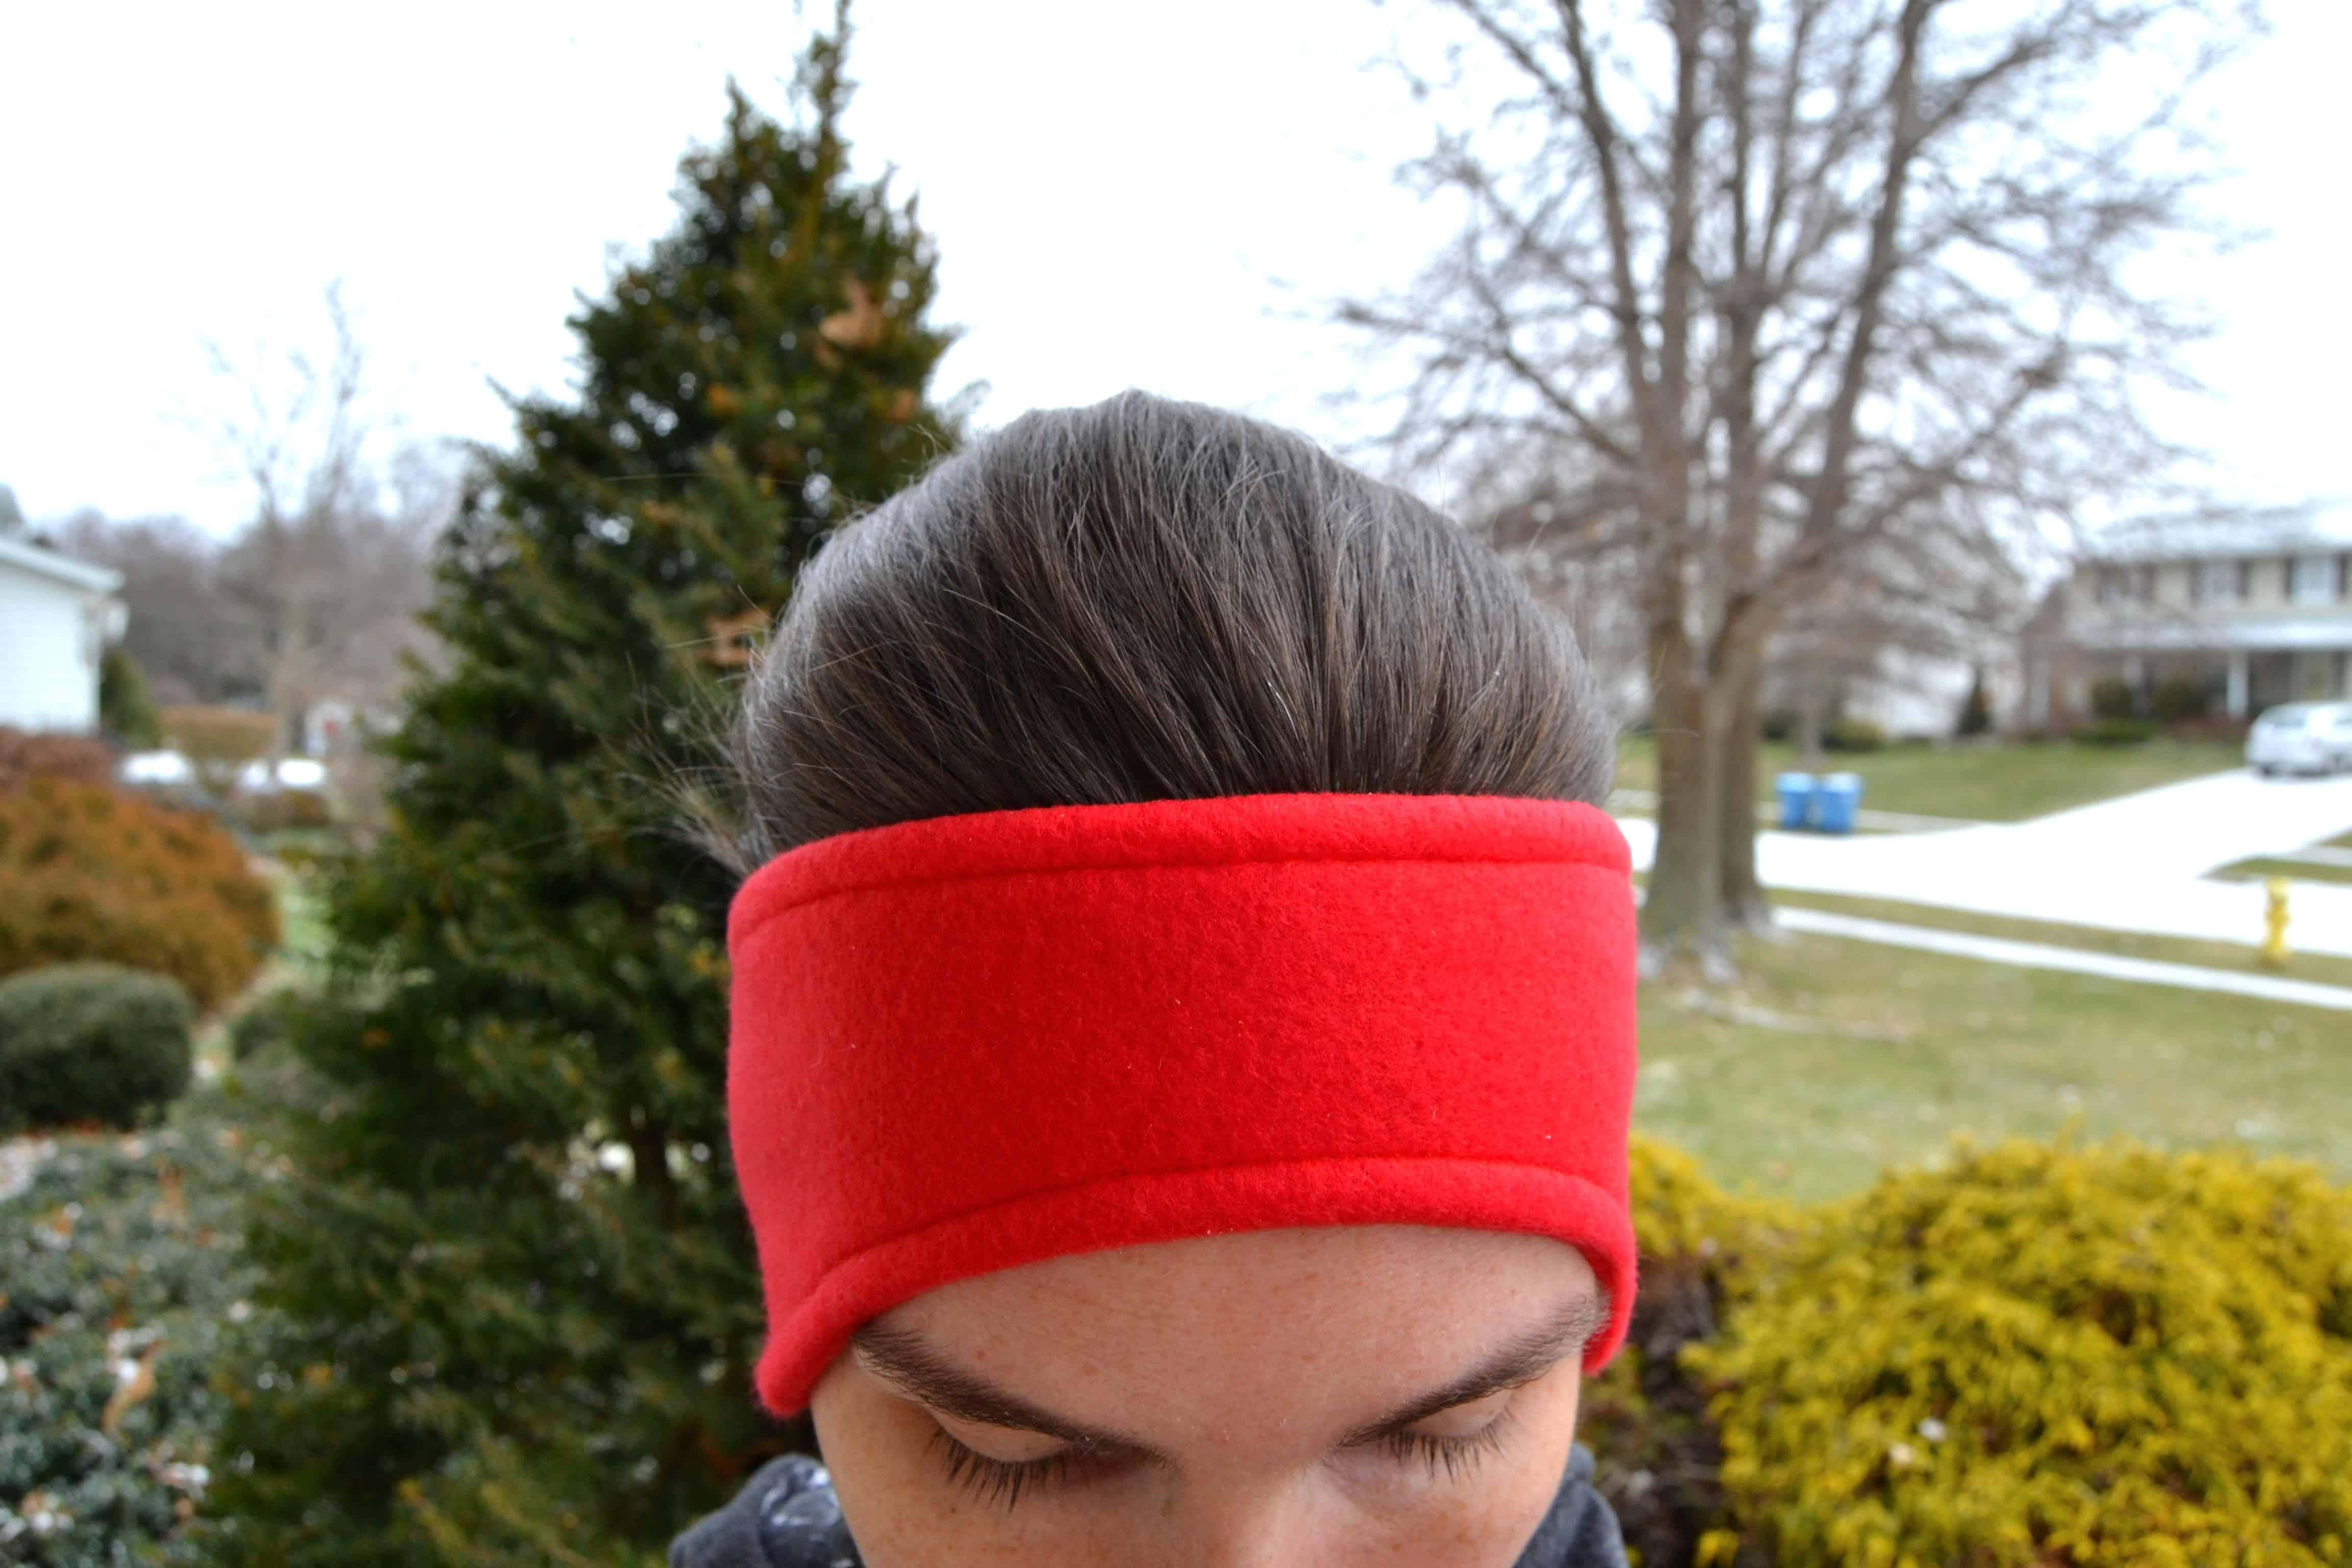 the finished headband from the front